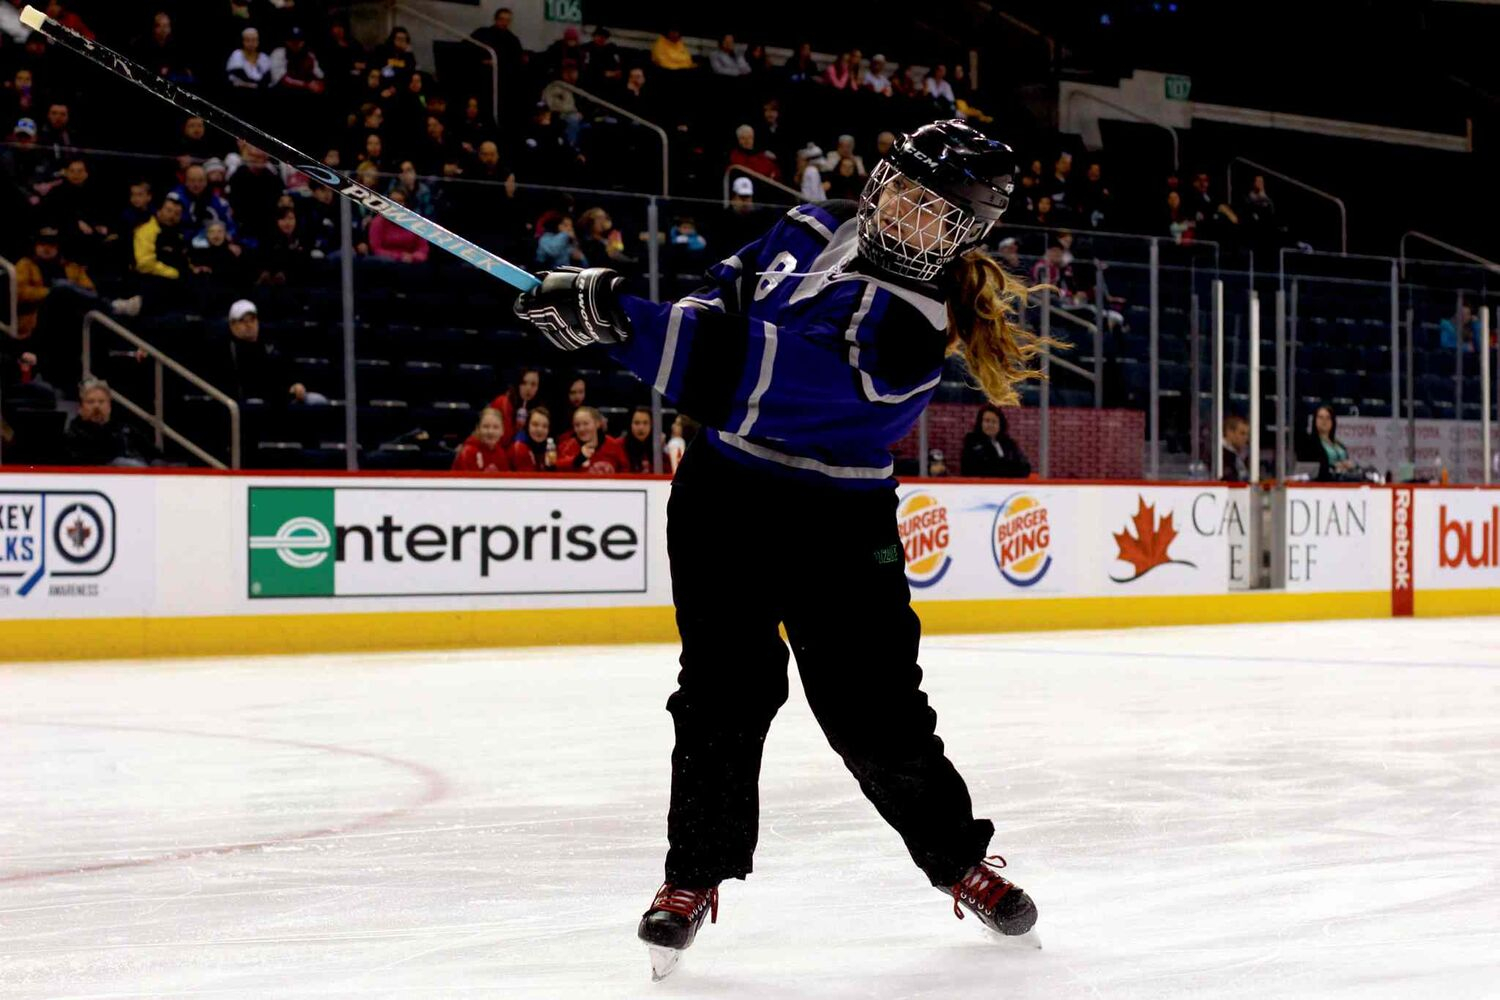 Taylor Roy  of the Norberry Glenlea Knights takes part in the Hardest Shot Competition at the Winnipeg Ringette League's all-star game at the MTS Centre. (Jordan Thompson)